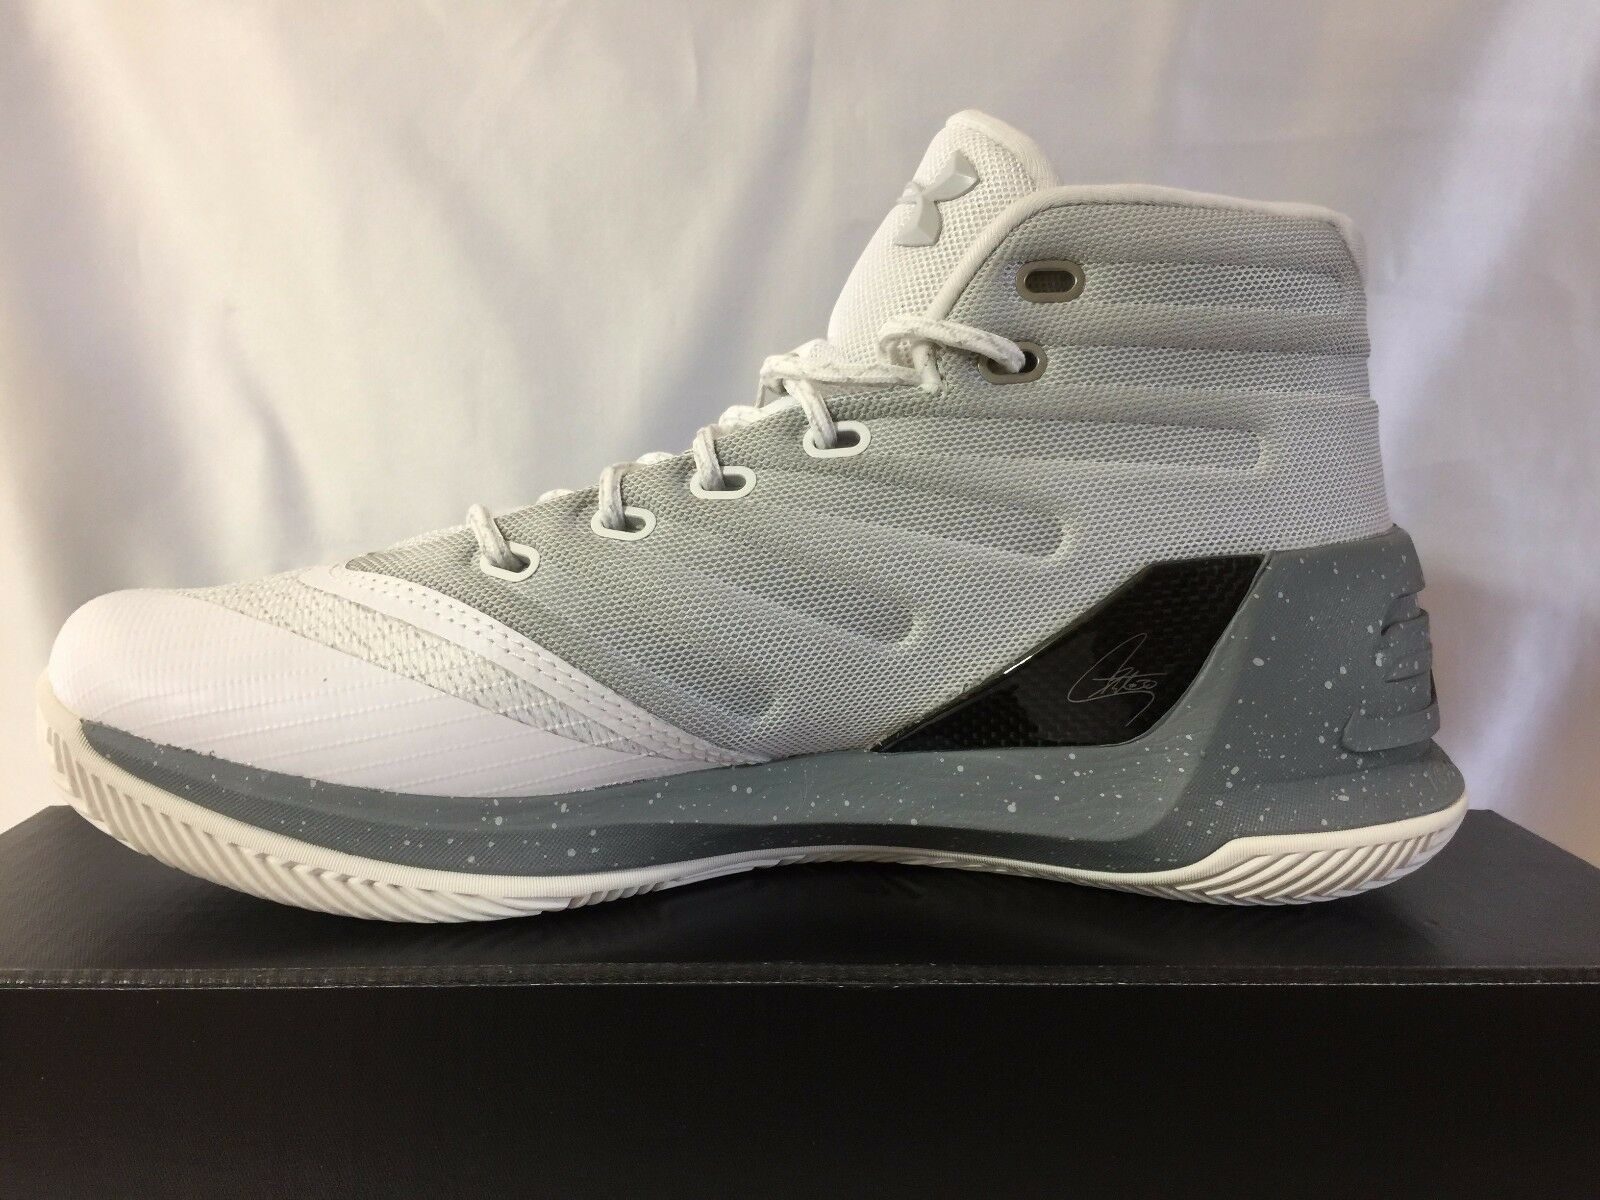 New With Box Box With Under Armour UA Curry 3 Uomo's Basketball Shoes-1269279-101 a3f6f3